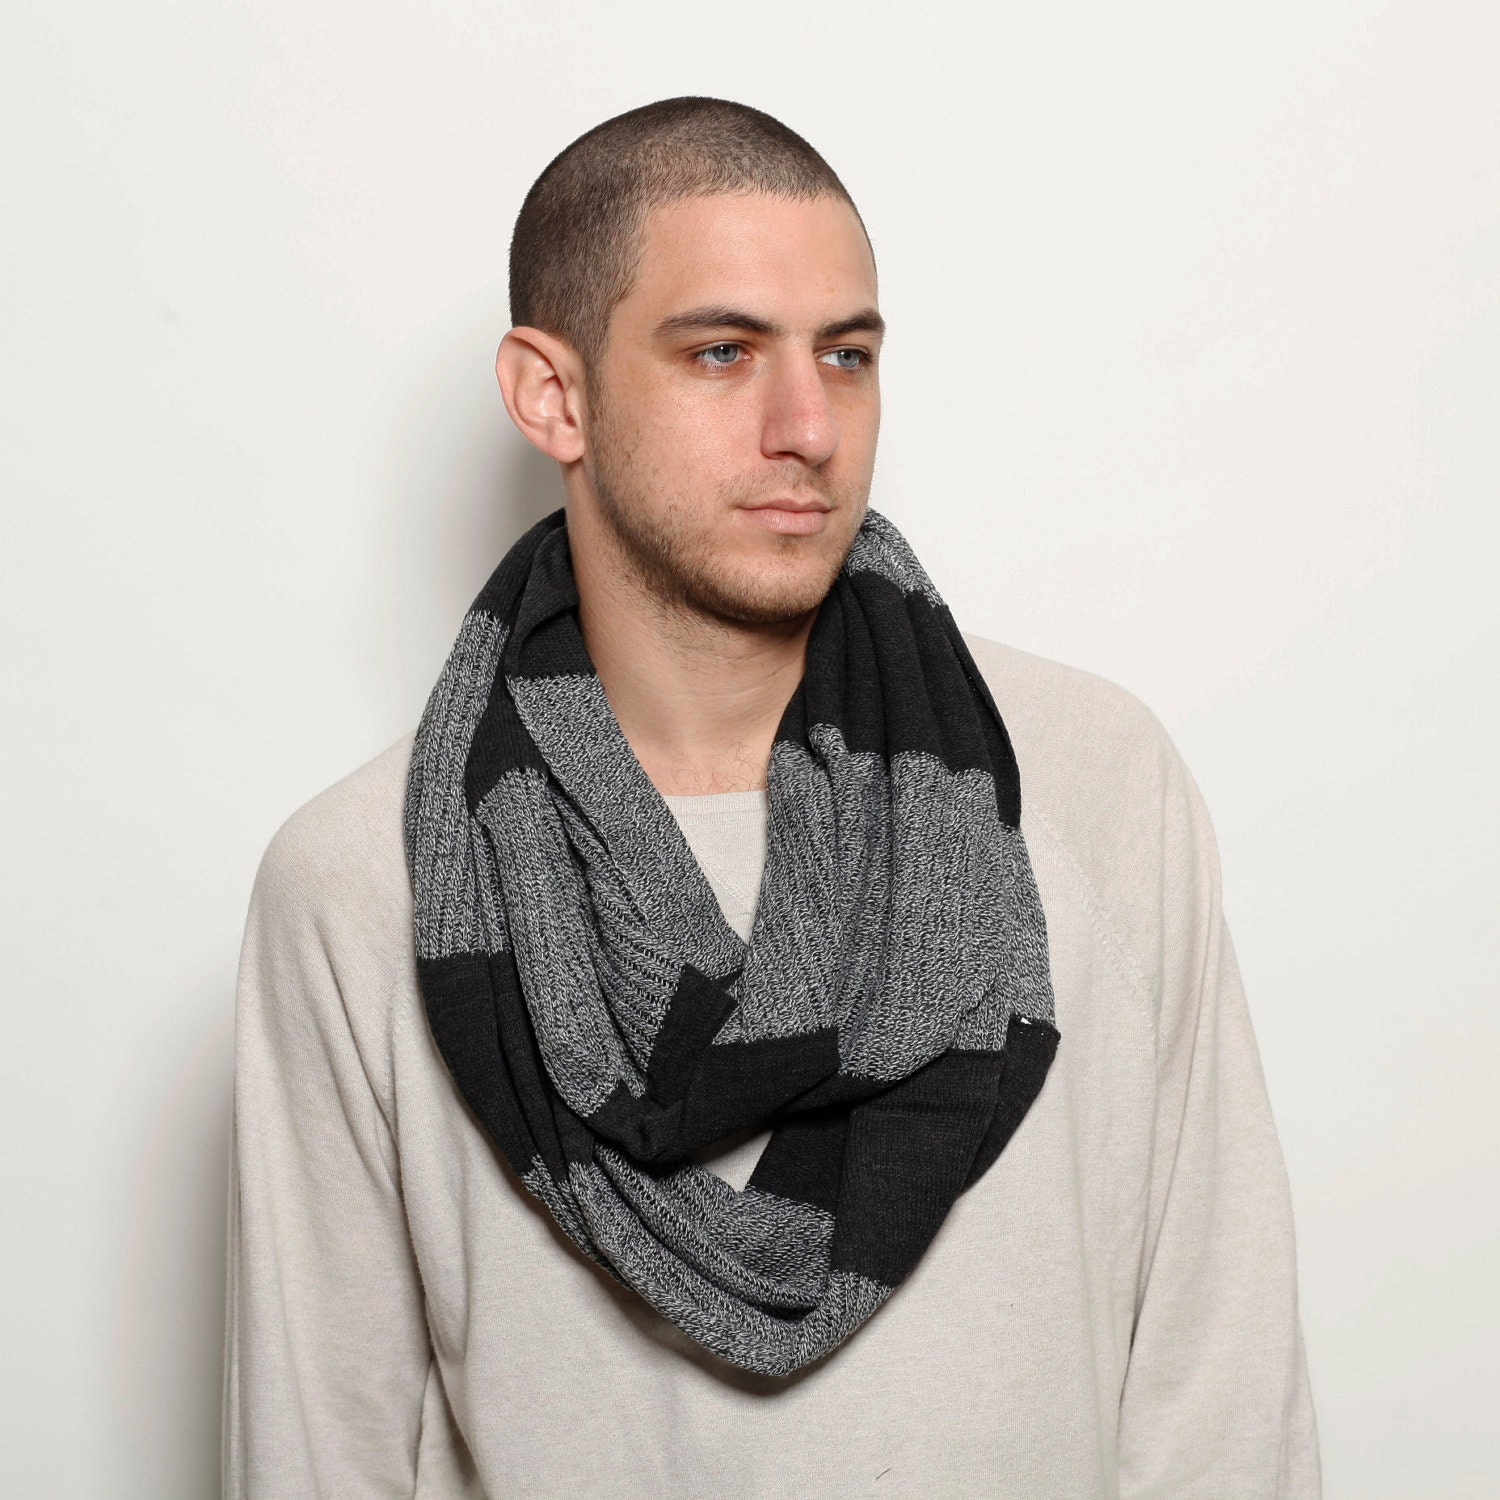 Cable knit infinity loop scarf for women, men, girls and boys. Pendleton Men's Infinity Scarf. by Pendleton. $ - $ $ 20 $ 69 50 Prime. FREE Shipping on eligible orders. Some sizes/colors are Prime eligible. 2 out of 5 stars 1. Product Features Infinity scarf to keep you cozy warn.